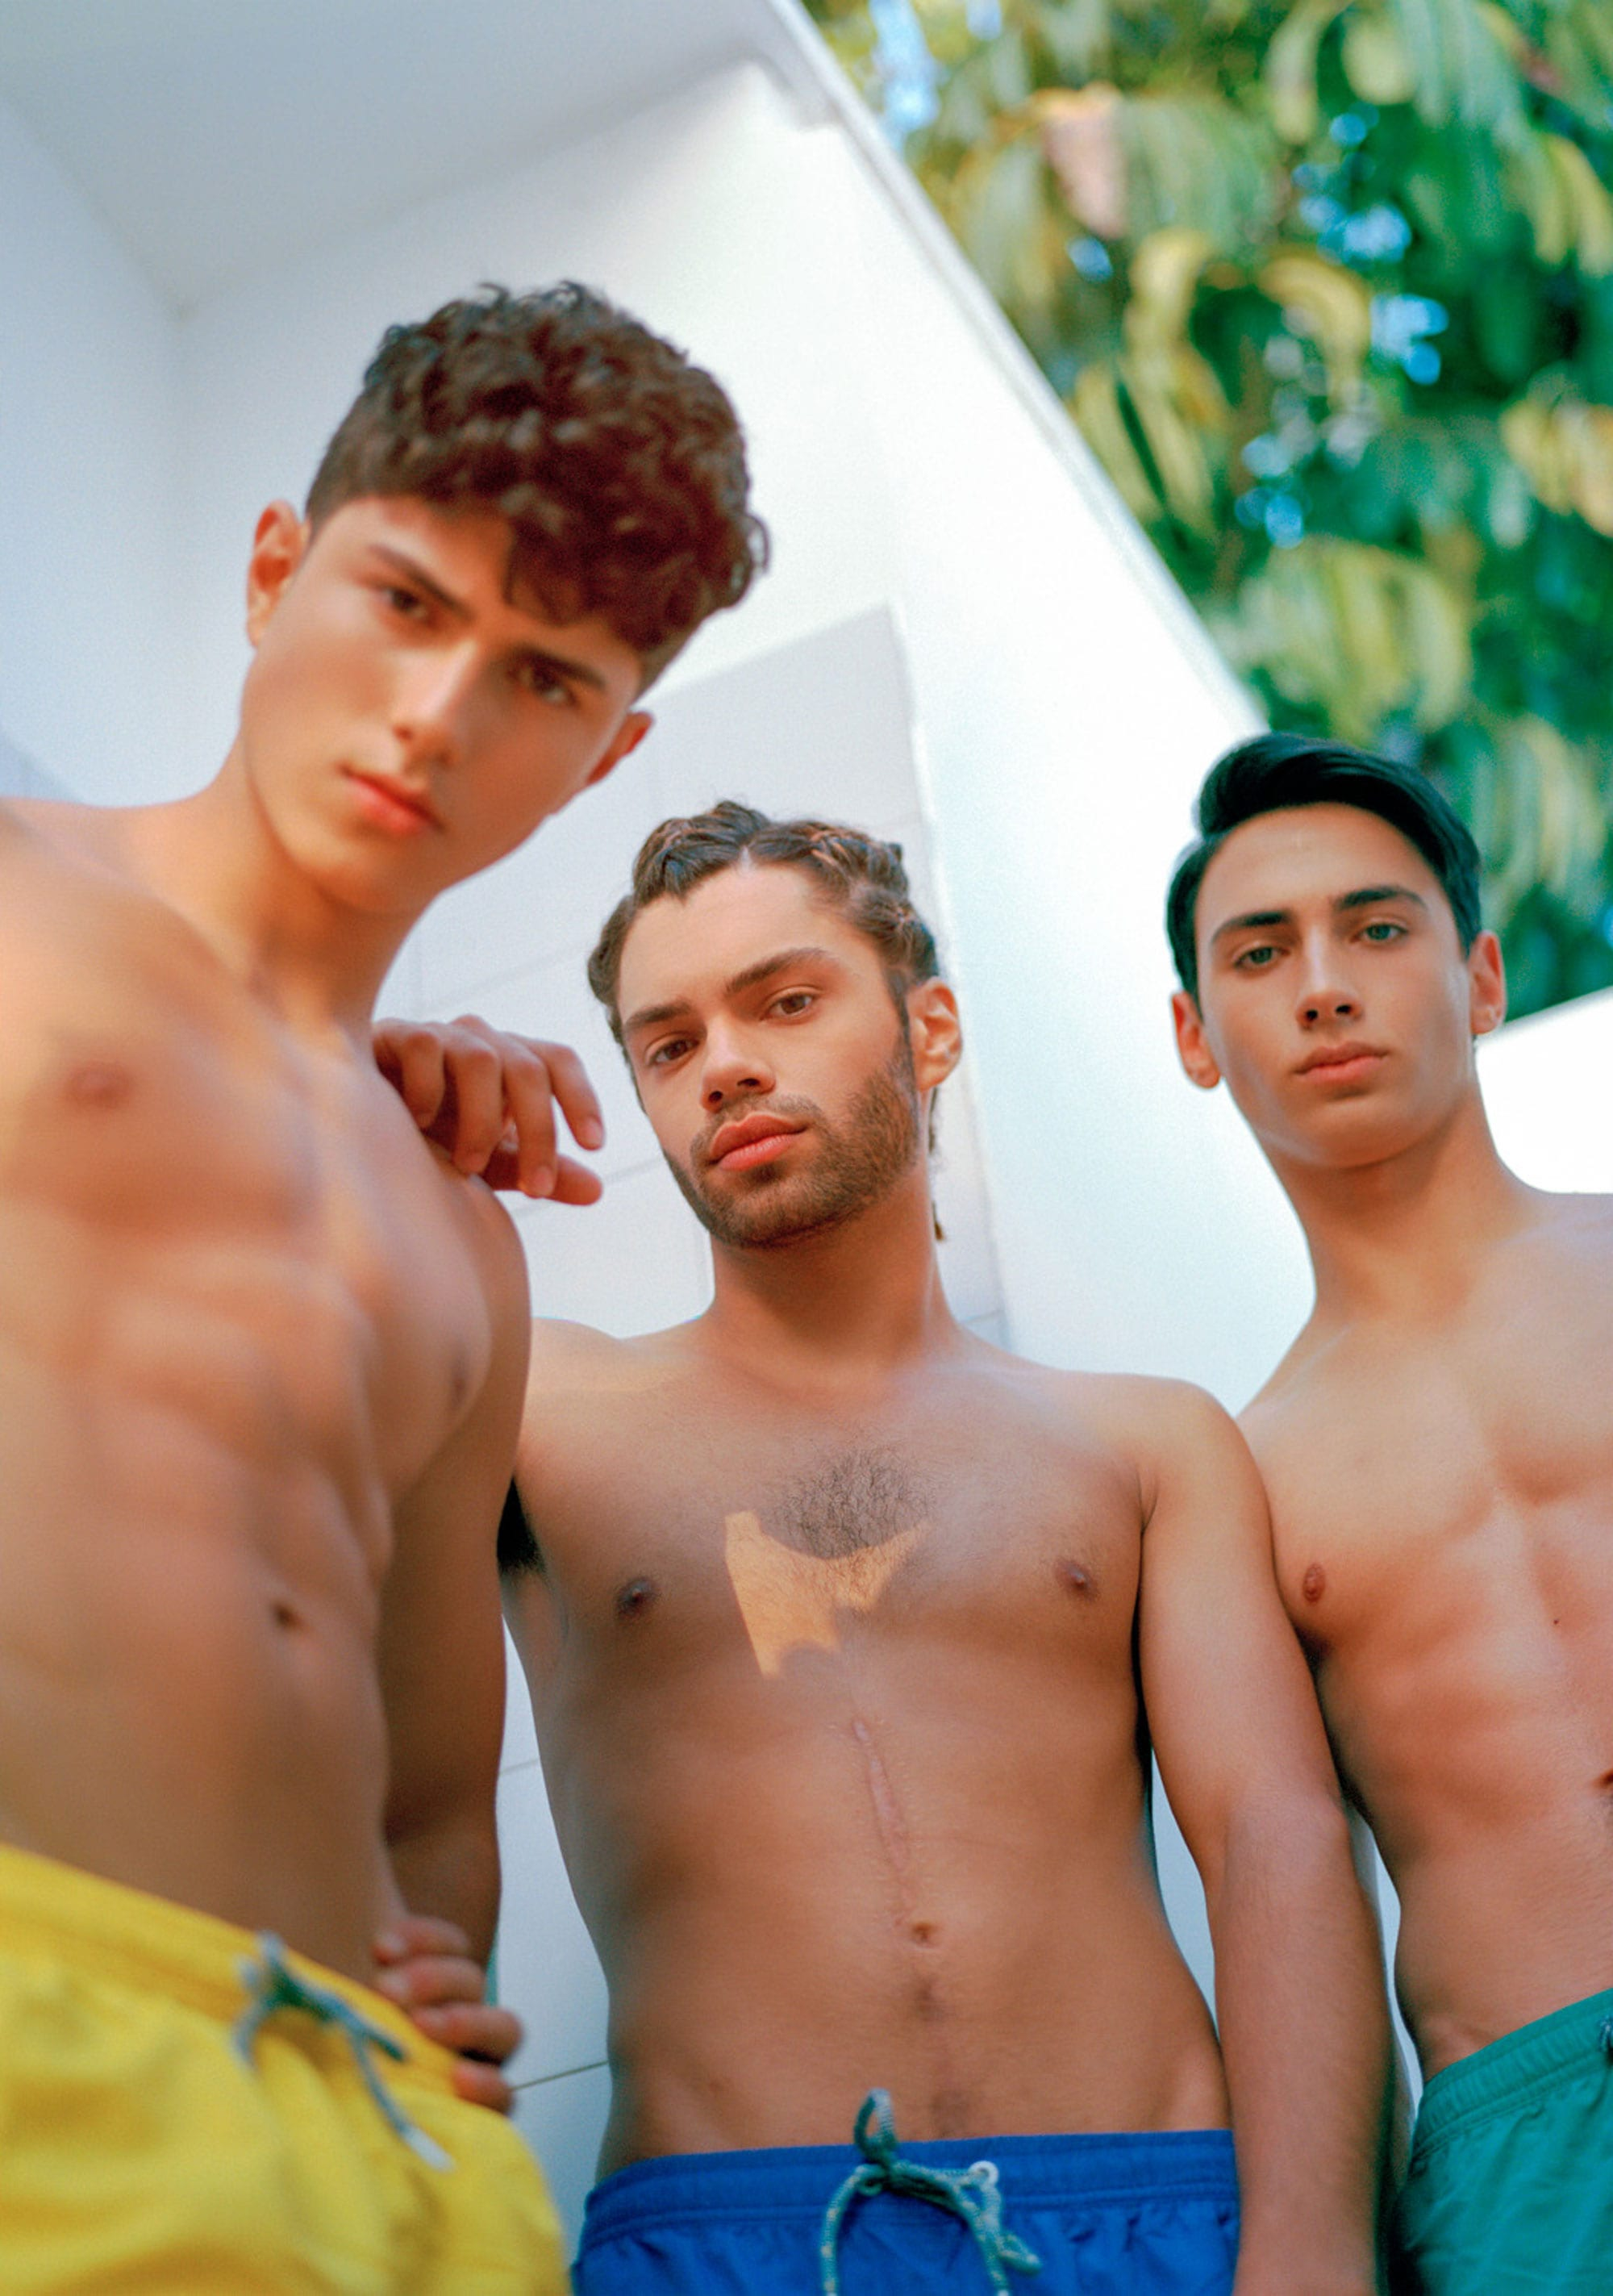 Shorts: Renuar Photographer: Angel Chai Arviv, Styling: Tal Bouhinin, Makeup Artist: Iris Hatzavin, Esther Shitrite, Hair Stylist: Lior Krispekin, Models: Ariel Shuliain, Amir Netzerin, Or Dvirin for Passion Management -9